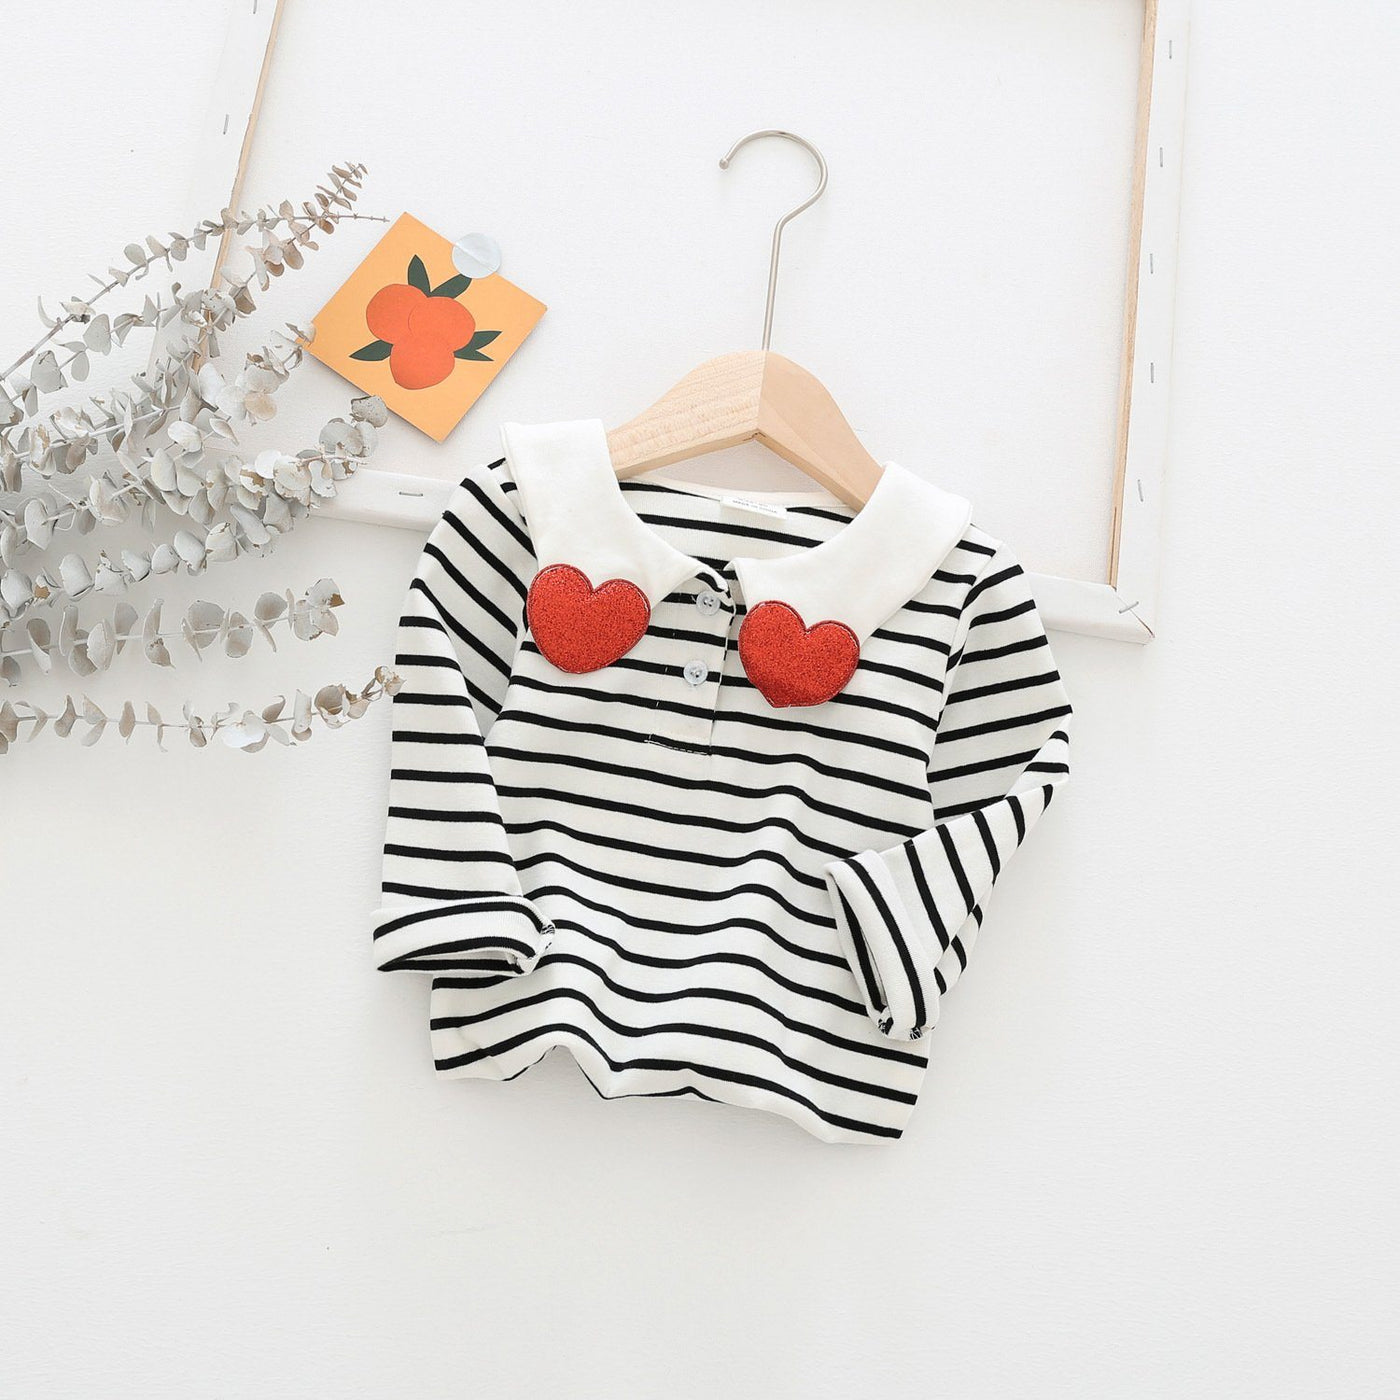 Alex + Nova Lovely Heart Collar Stripes Top - Alex + Nova